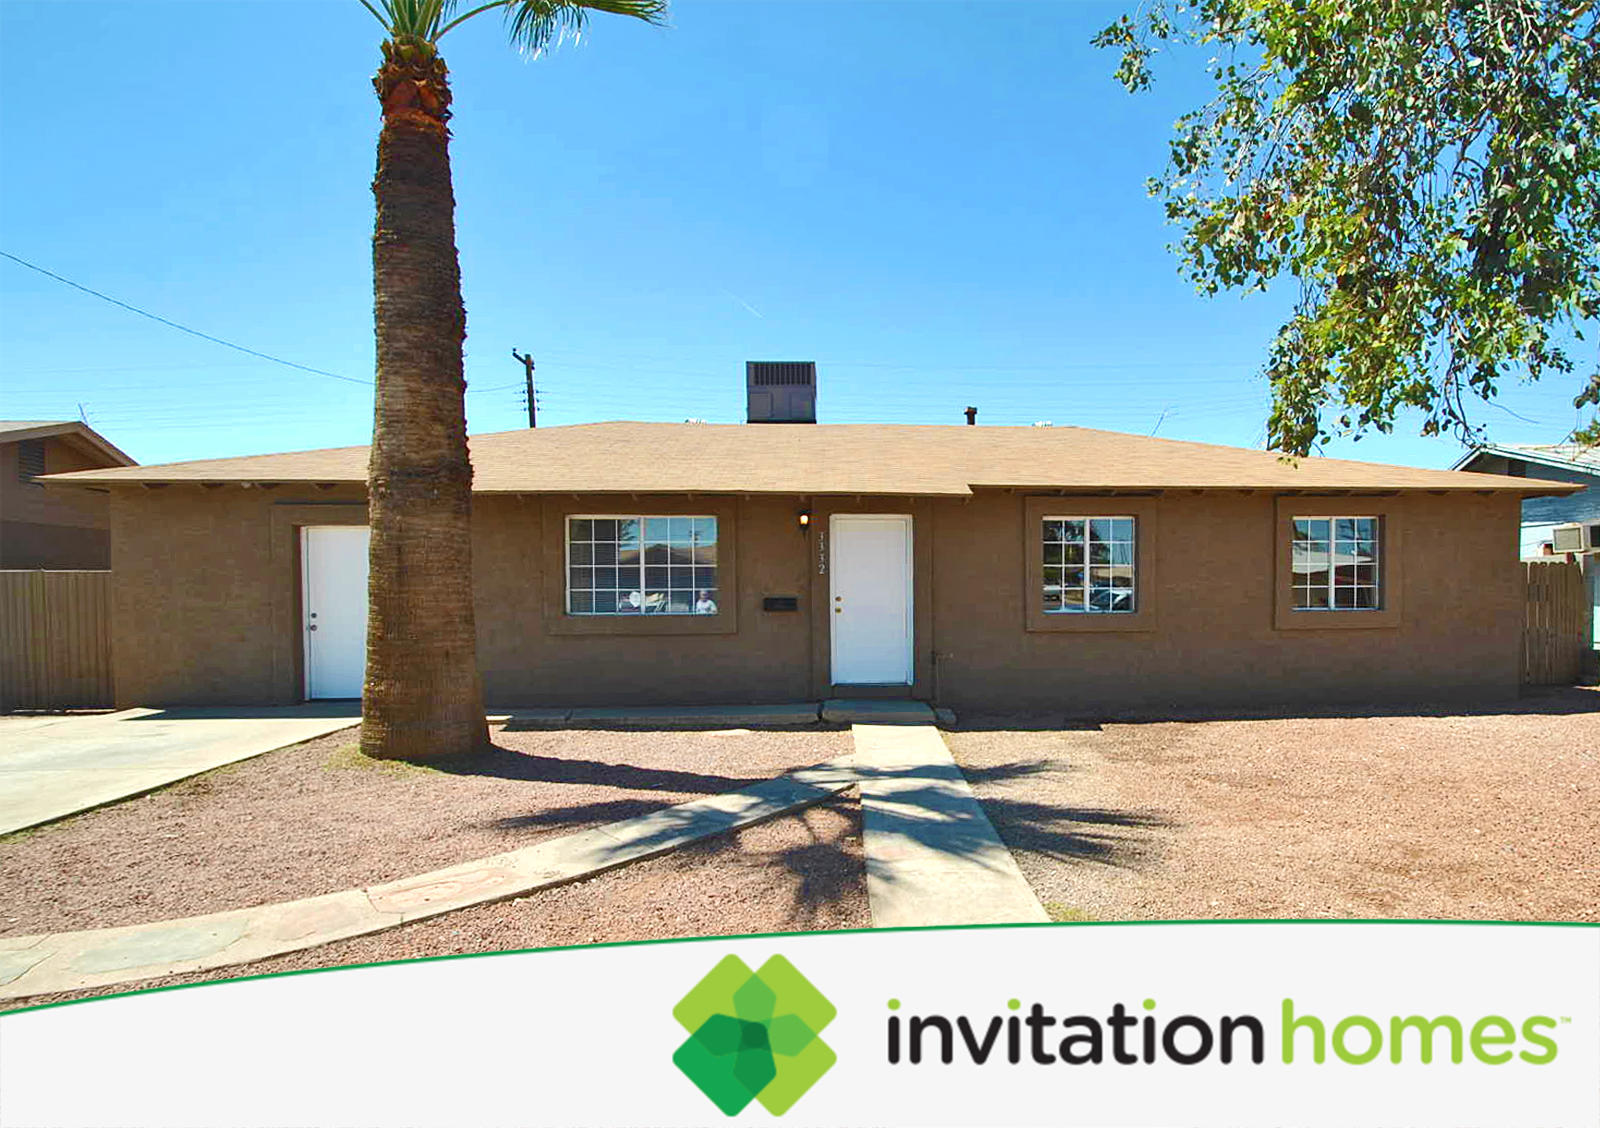 3332 n 39th ave for rent phoenix az trulia 3332 n 39th ave stopboris Image collections